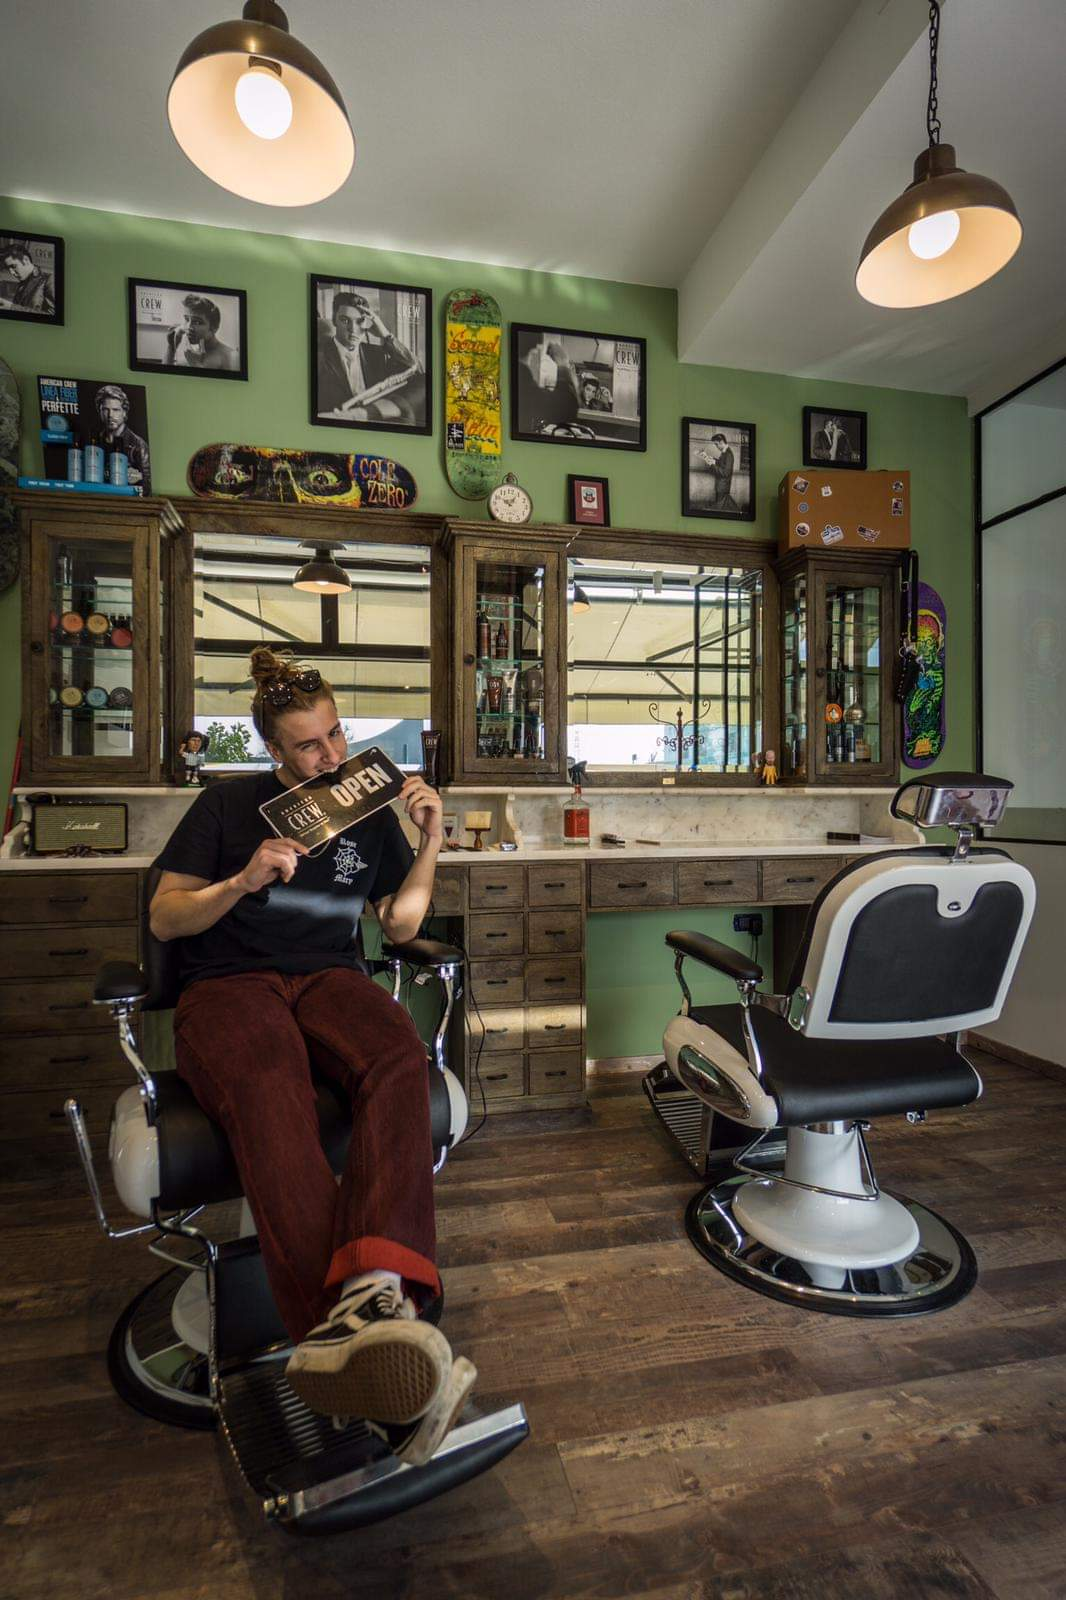 Barberchair   Barber furniture   Vintage   Handcrafted with pride   Worldwide delivery   Barbershop style   Best for barbers   High quality furniture